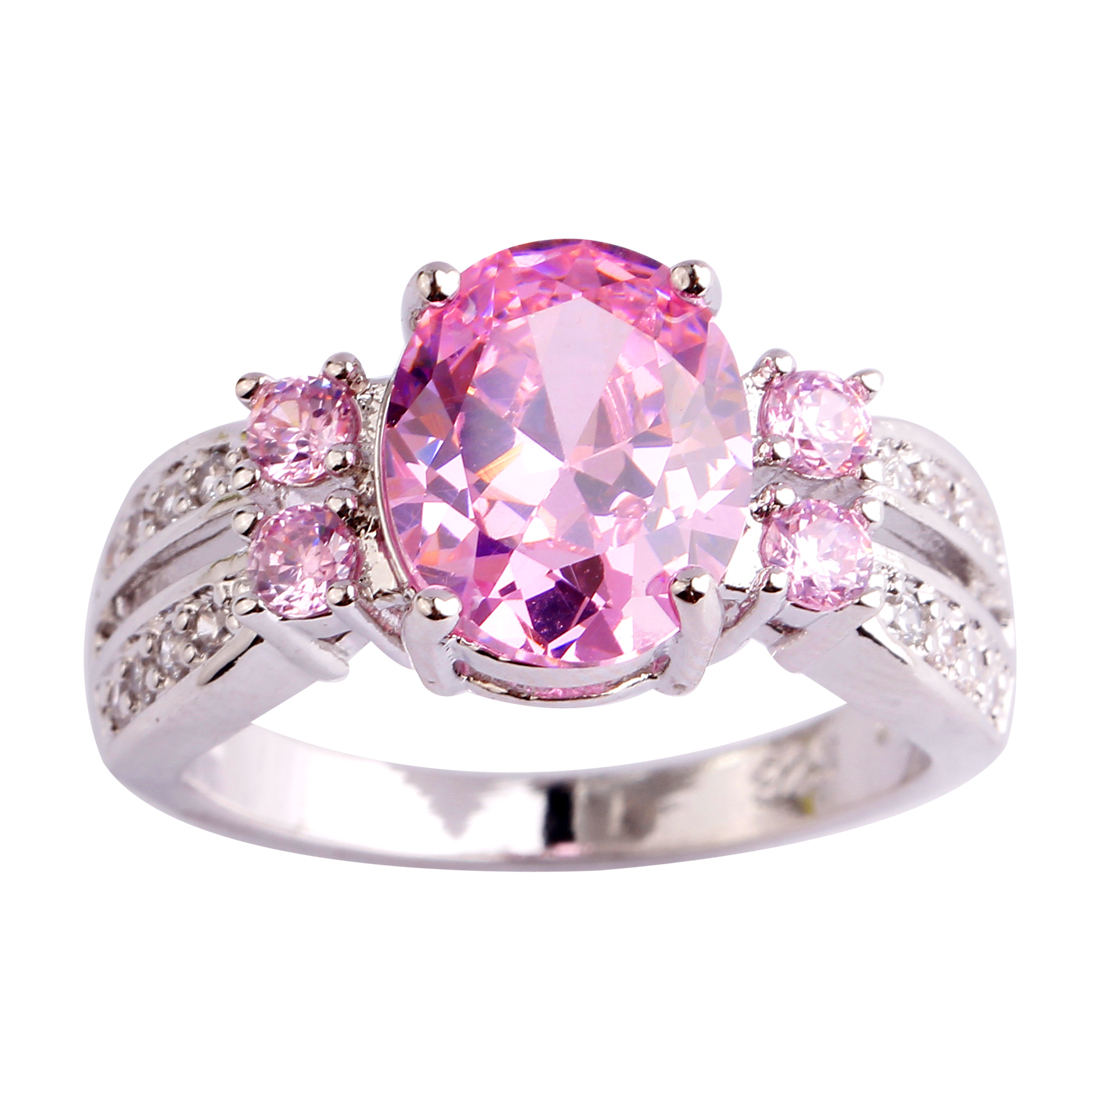 AAA CZ Crystal Wholesale Plated Silver Ring Size 6 11 Pink CZ Women ...